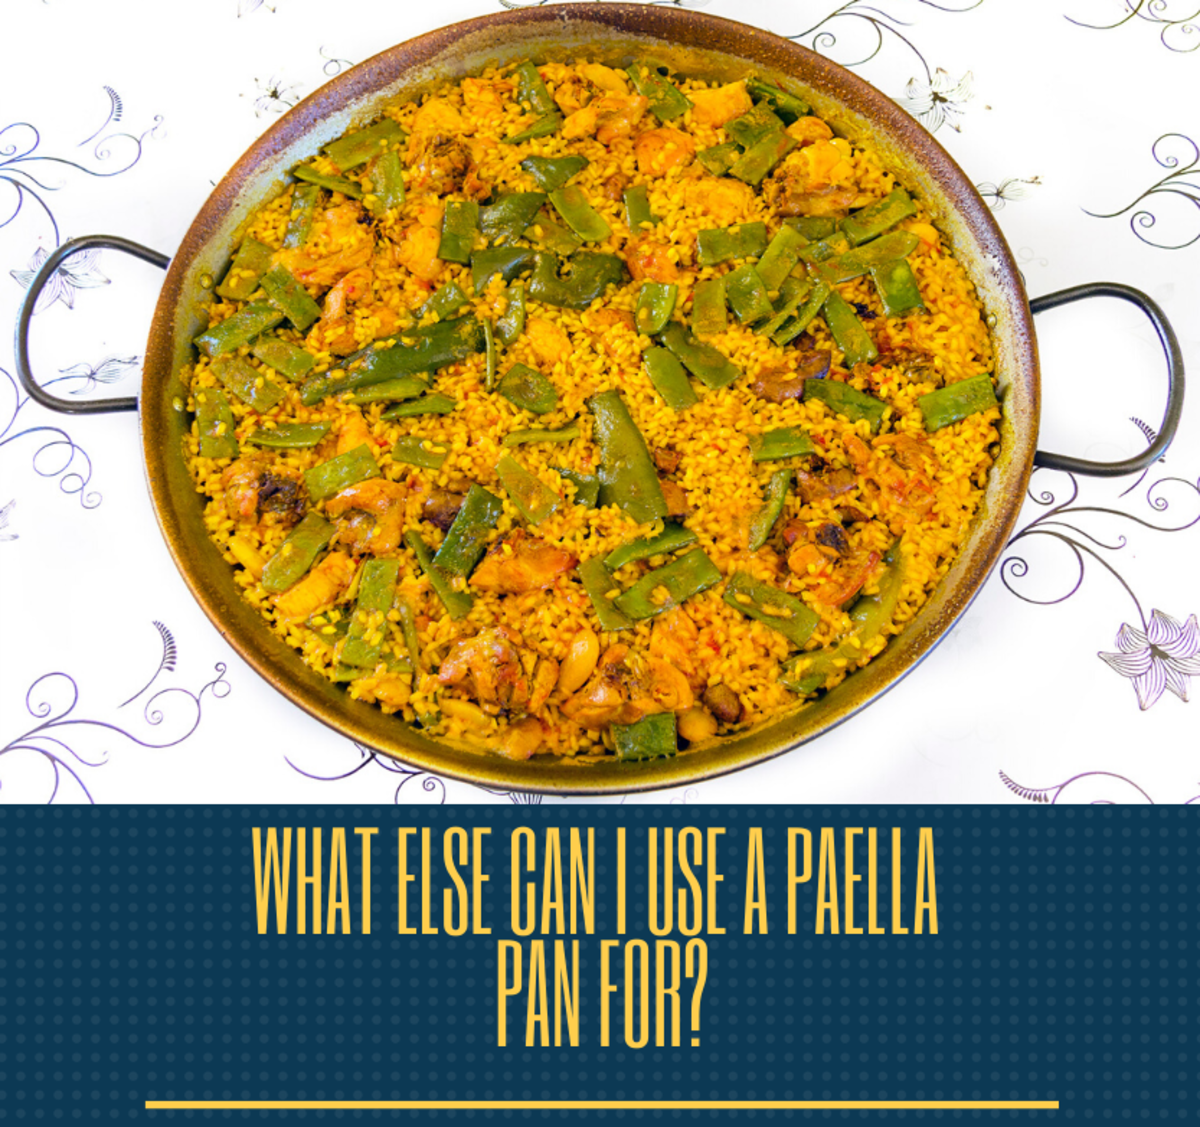 What Else Can I Use a Paella Pan For?